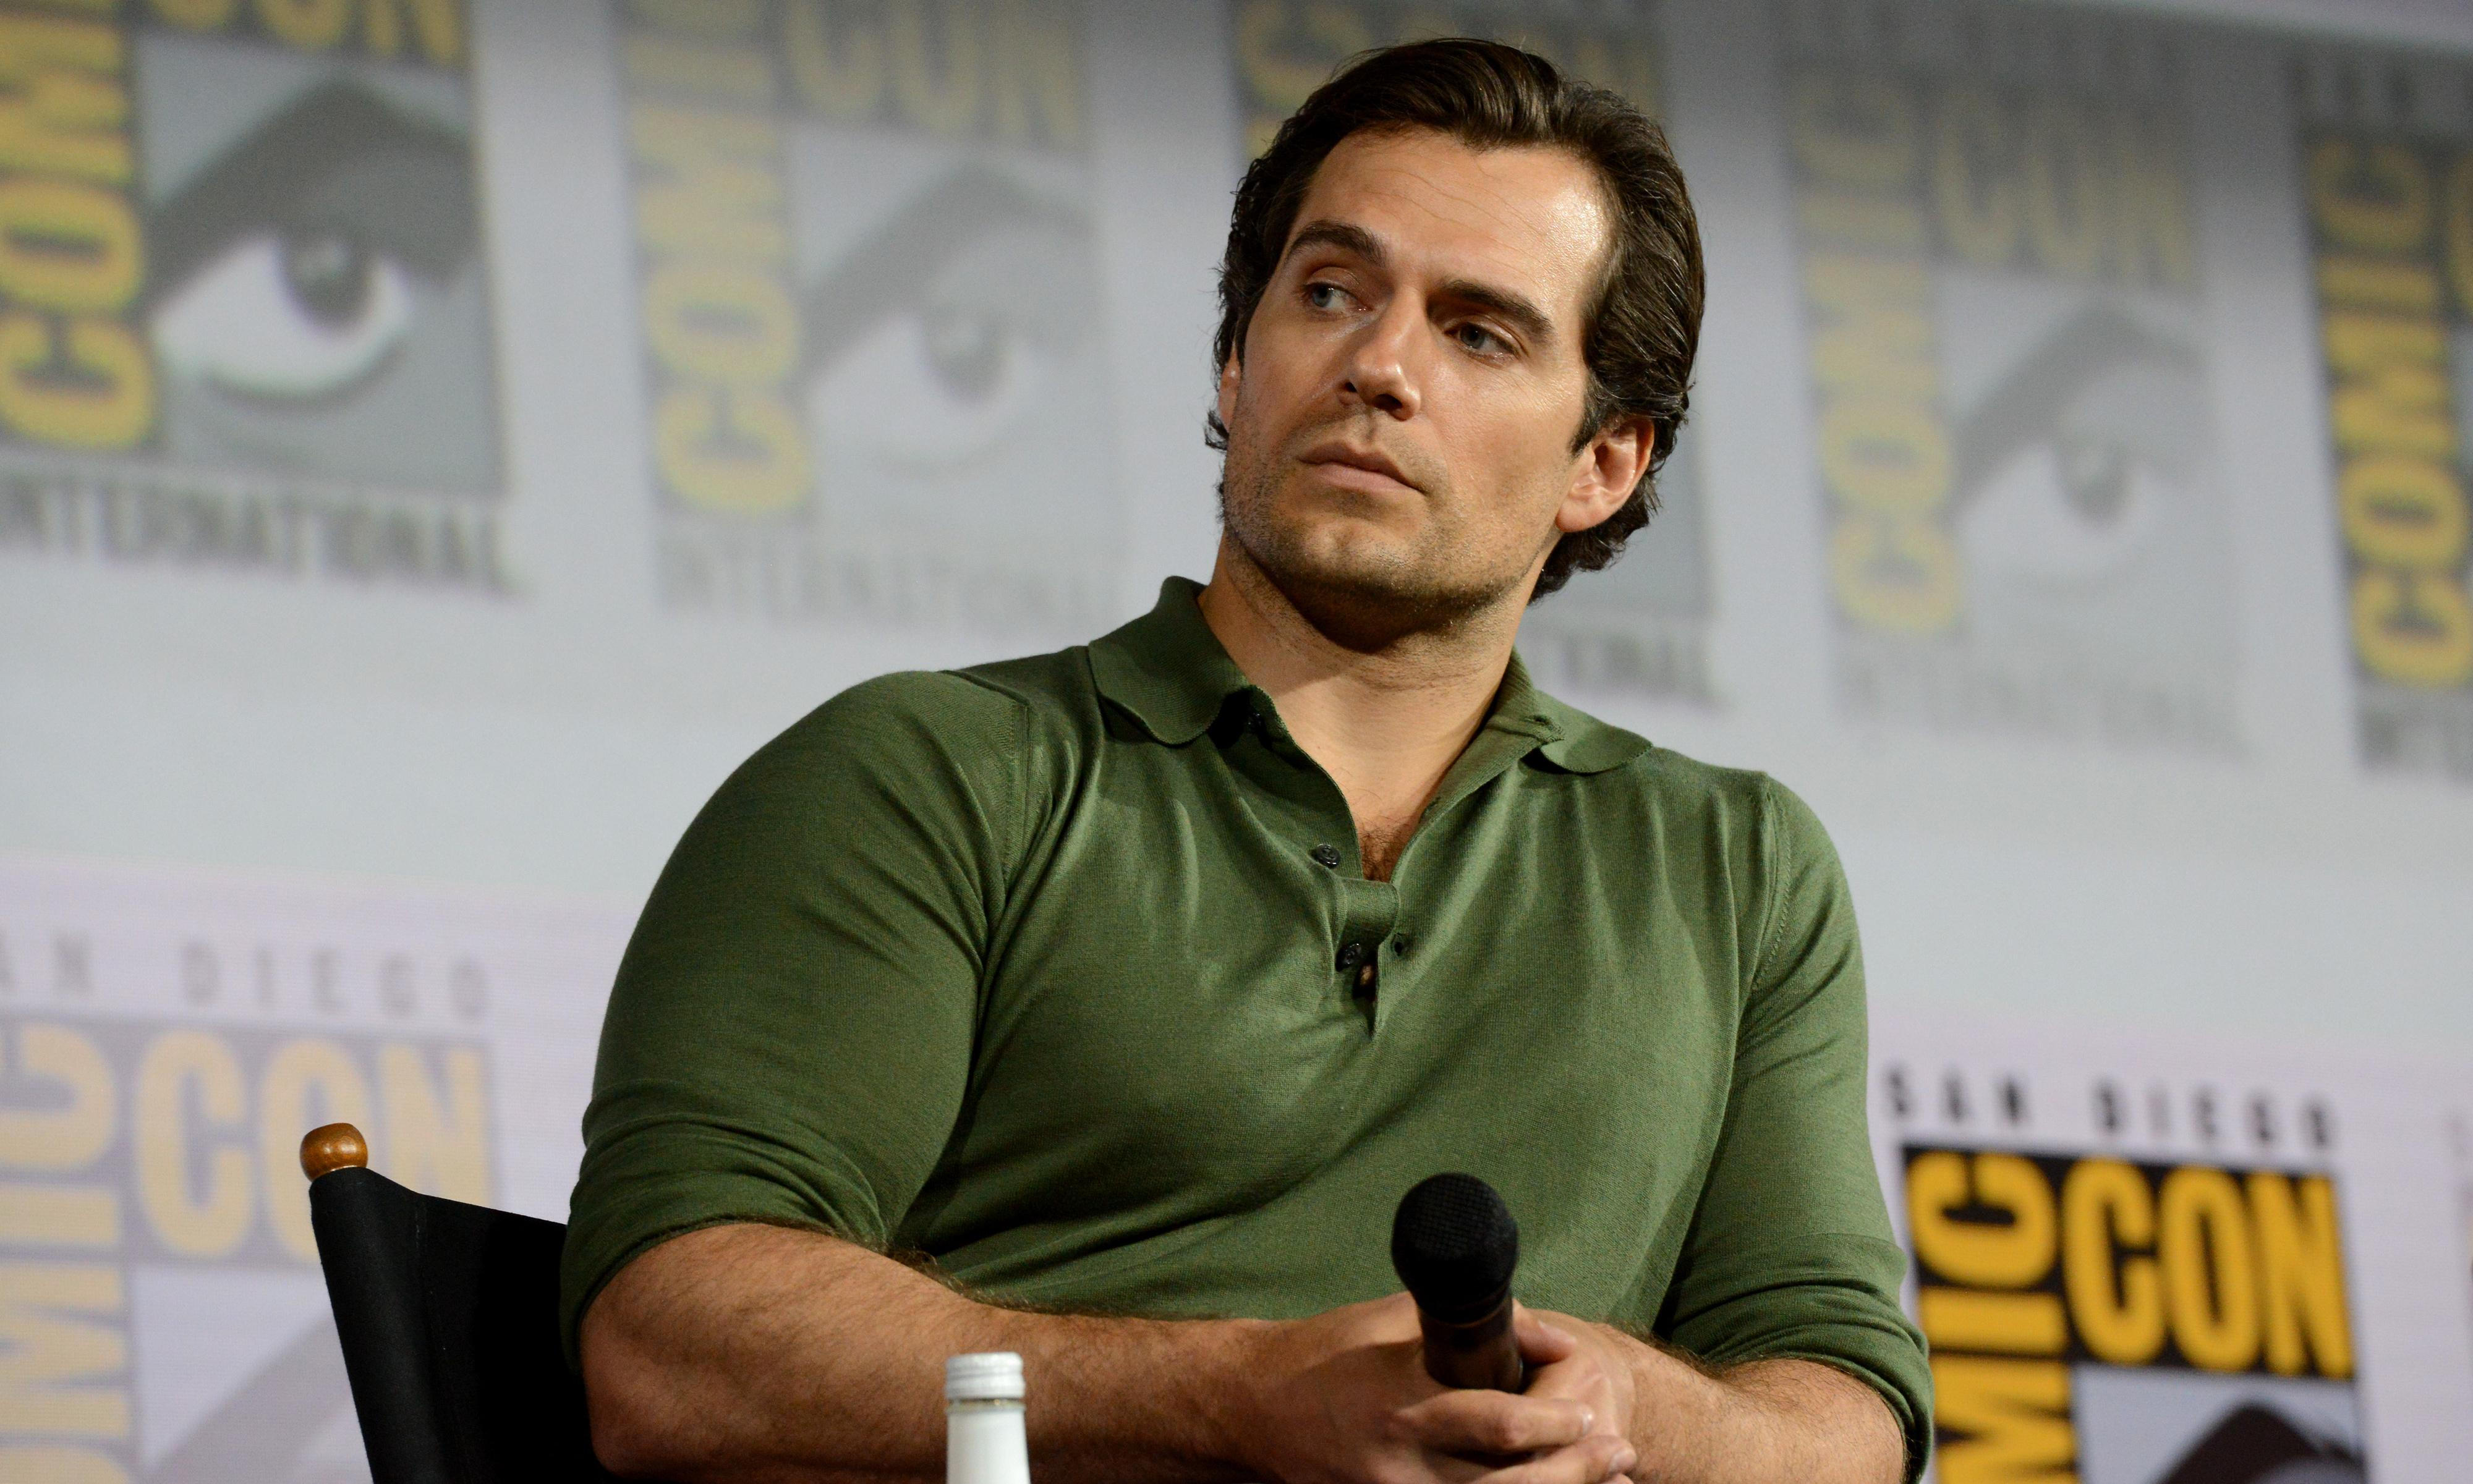 'I respond well to truth': Henry Cavill told he was too fat to play Bond